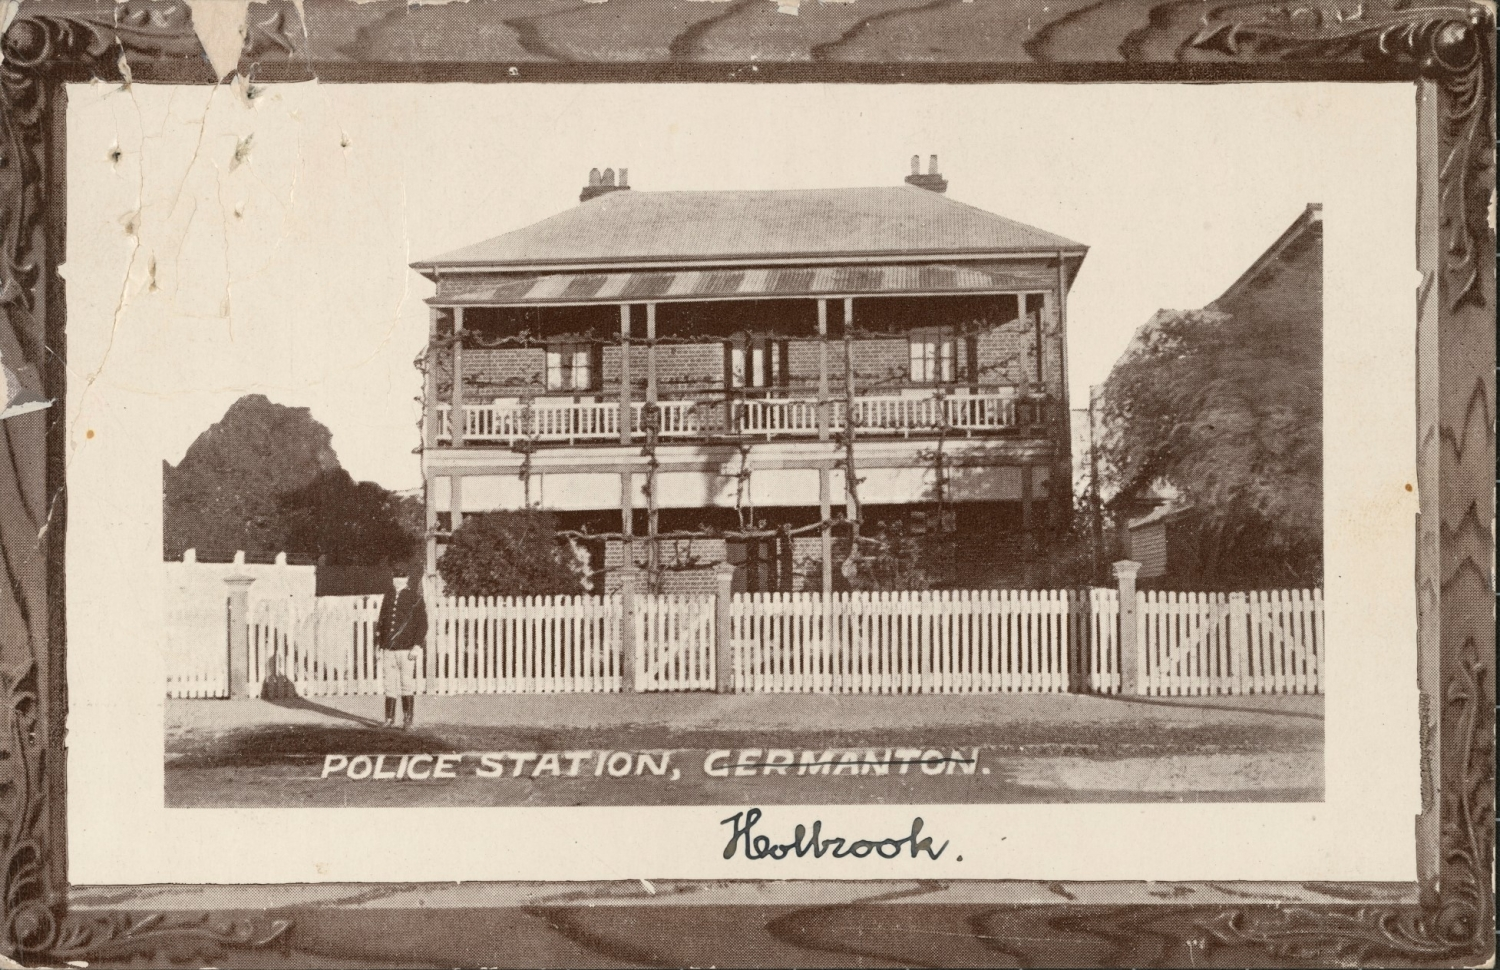 Black and white postcard depicting police station with hand written note saying Holbrook, with Germanton crossed out.